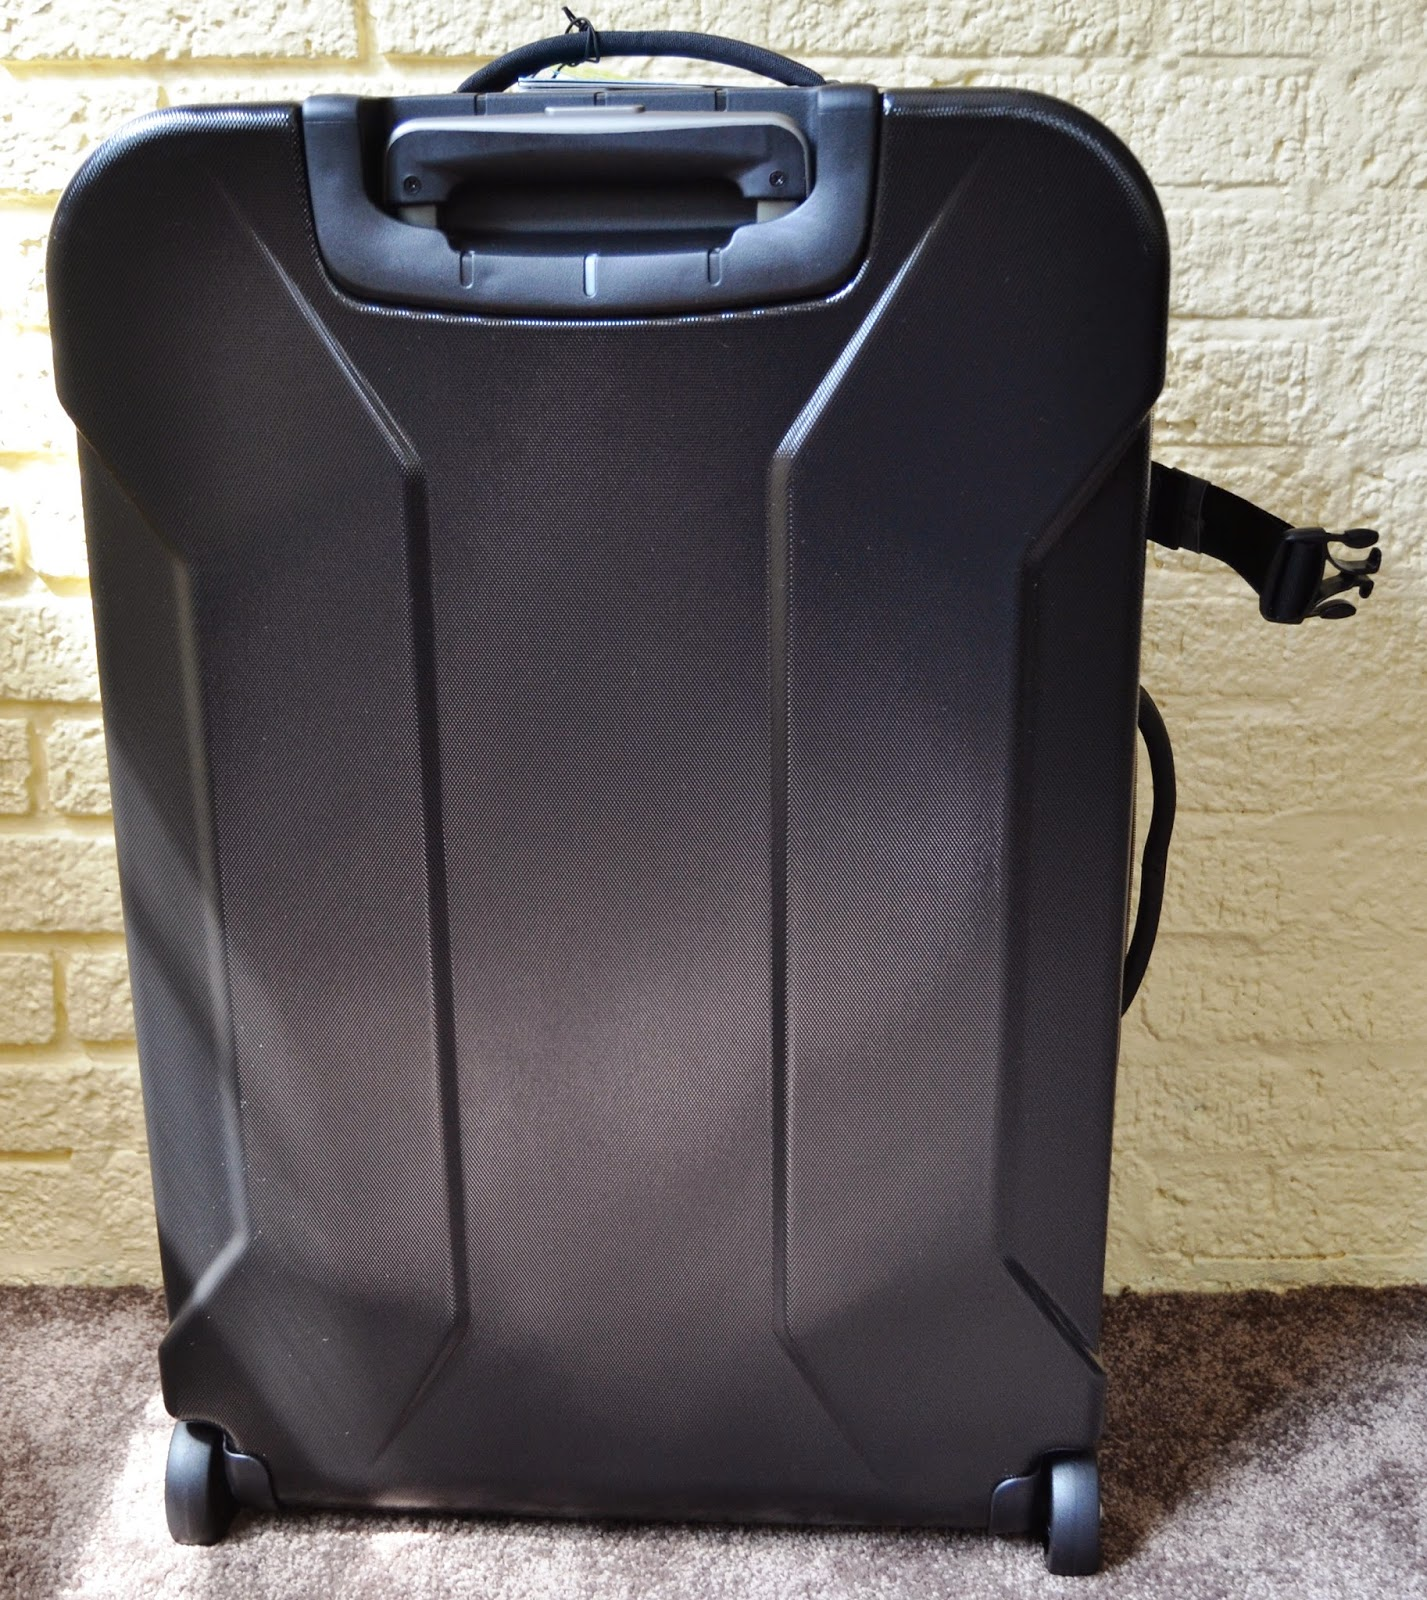 Eagle Creek EC Adventure Hybrid suitcase